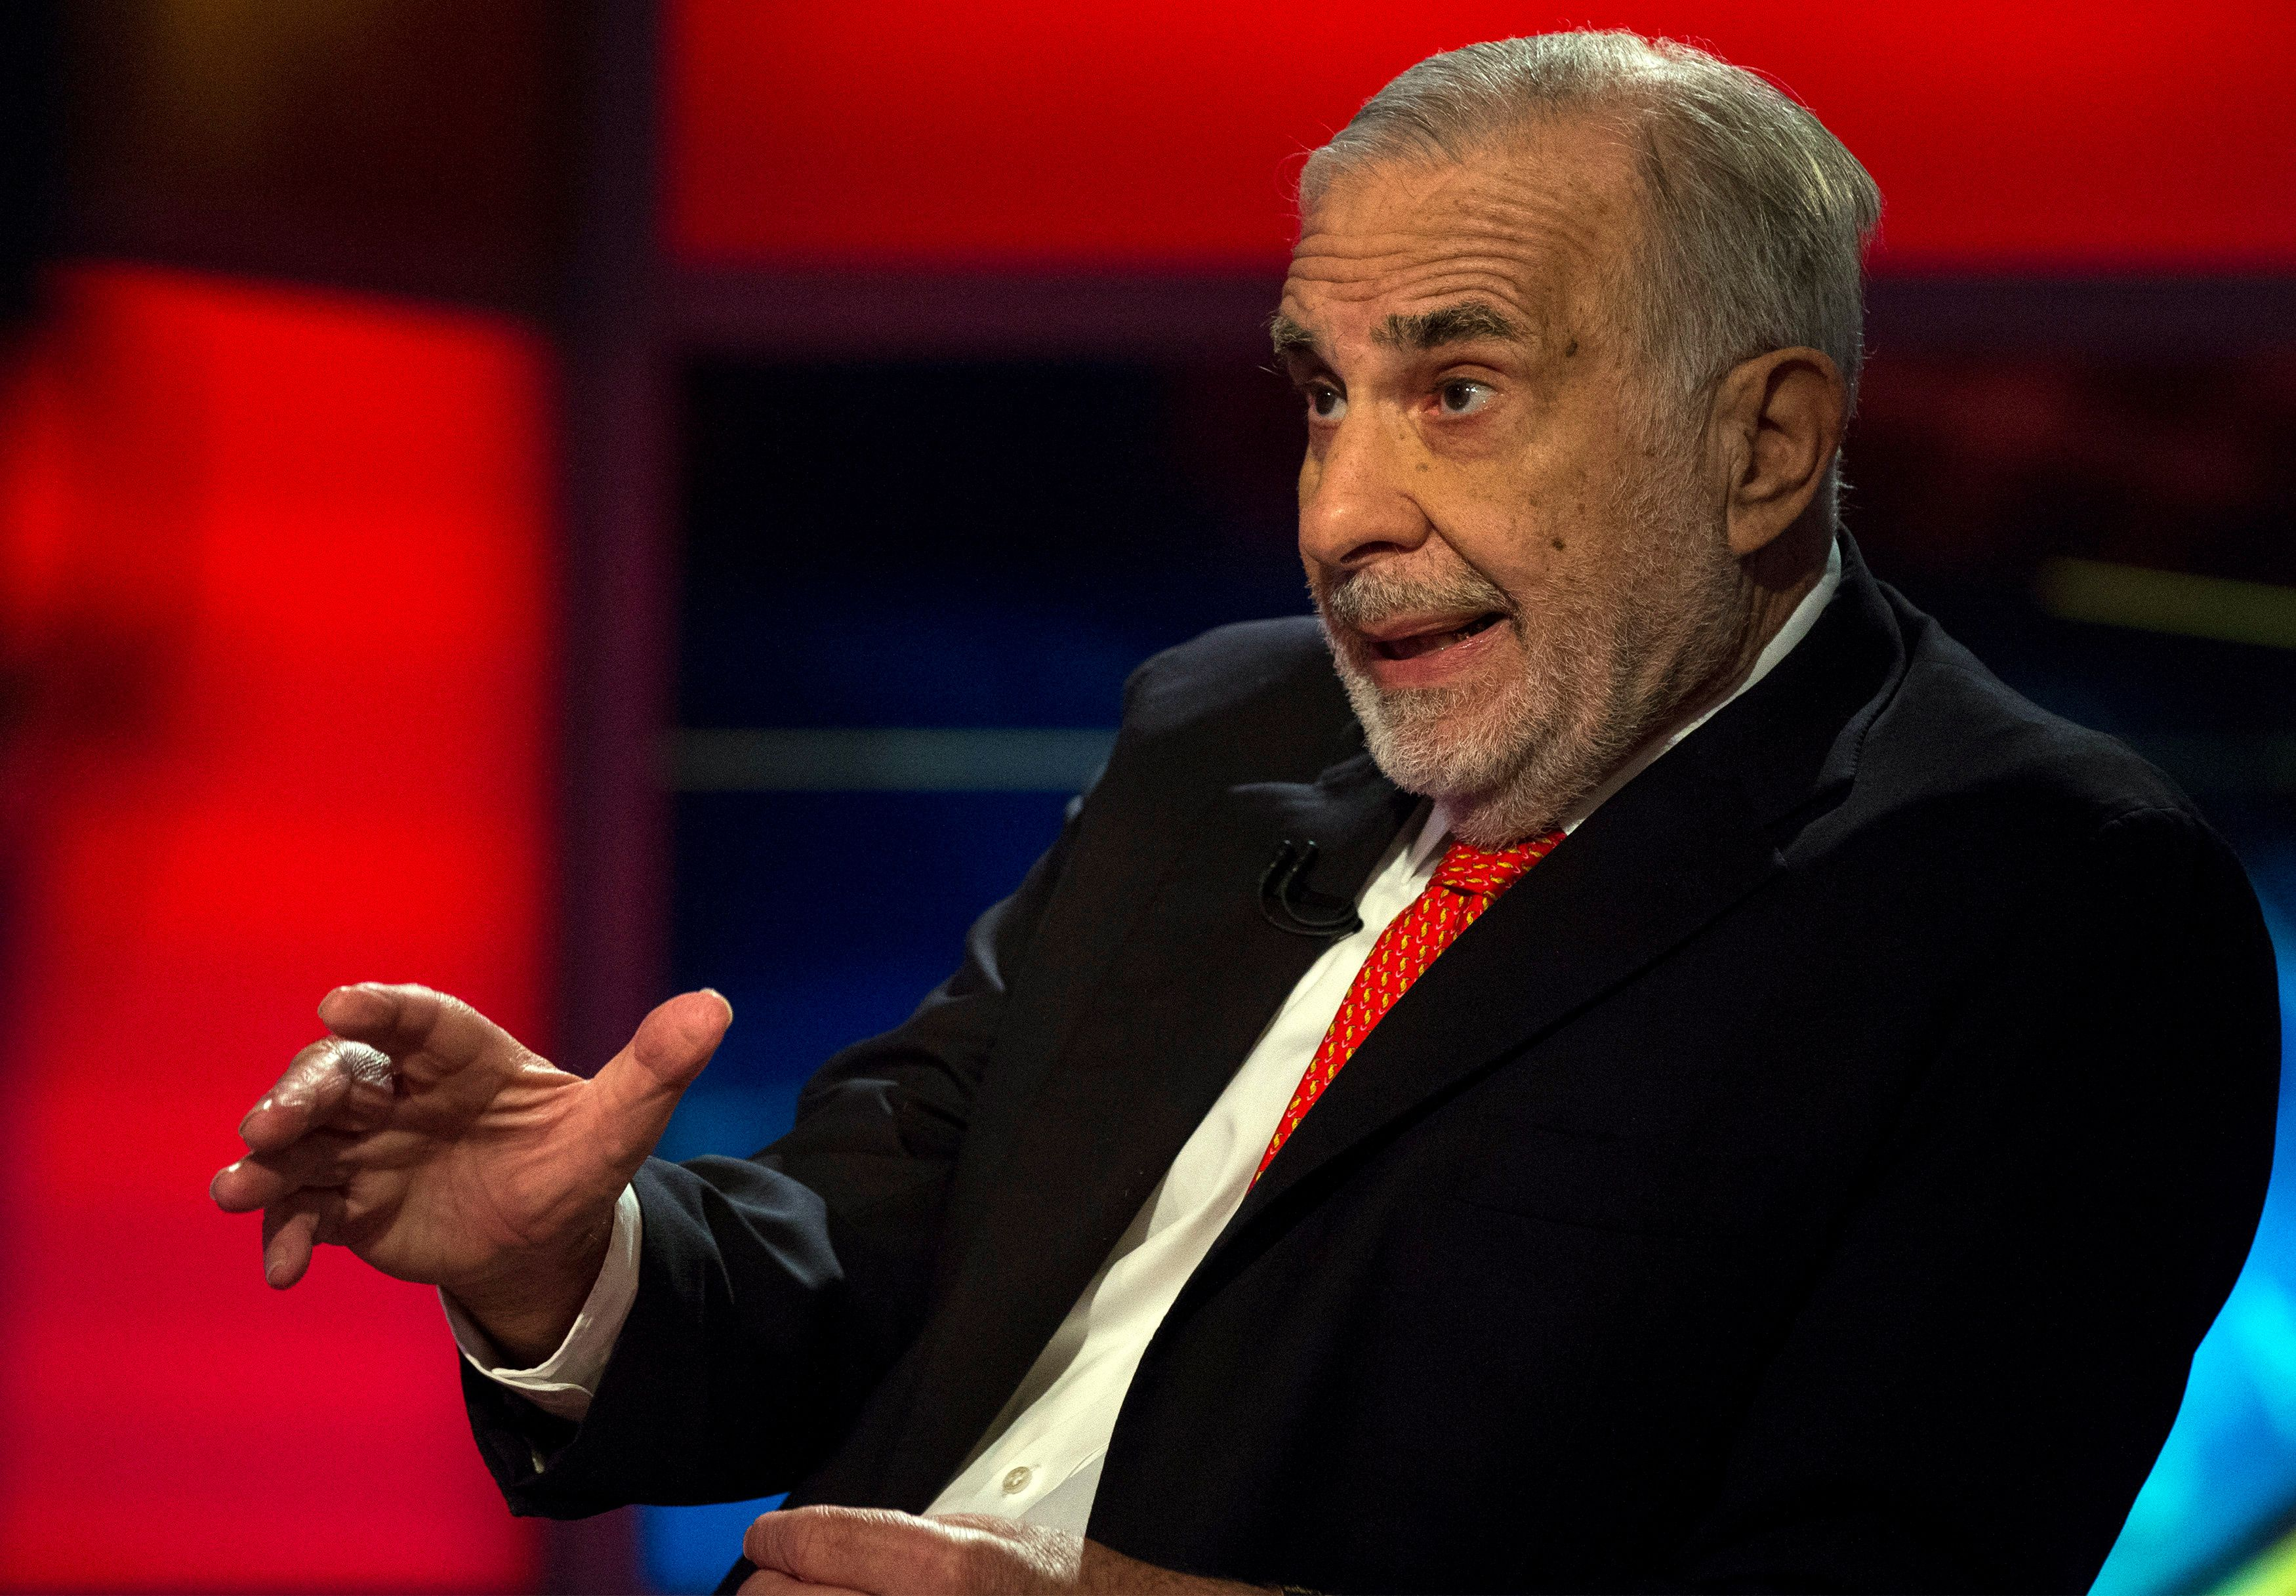 Billionaire activist-investor Carl Icahn gives an interview on Fox Business Network's Neil Cavuto show in New York, U.S. on February 11, 2014.  REUTERS/Brendan McDermid